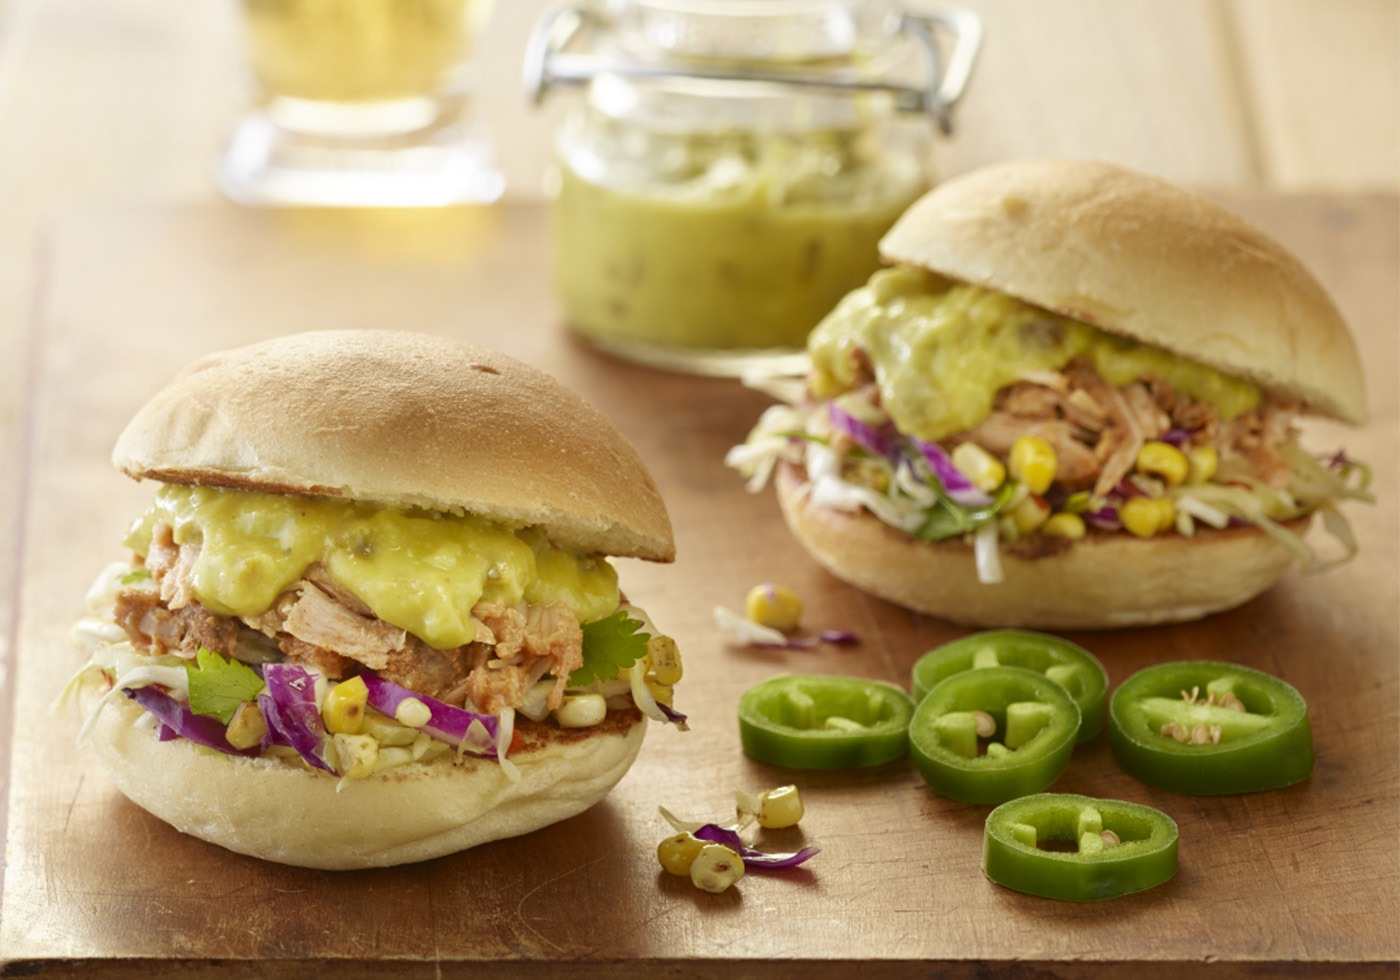 wa_sweet_jalapeno_spread_pork_slider